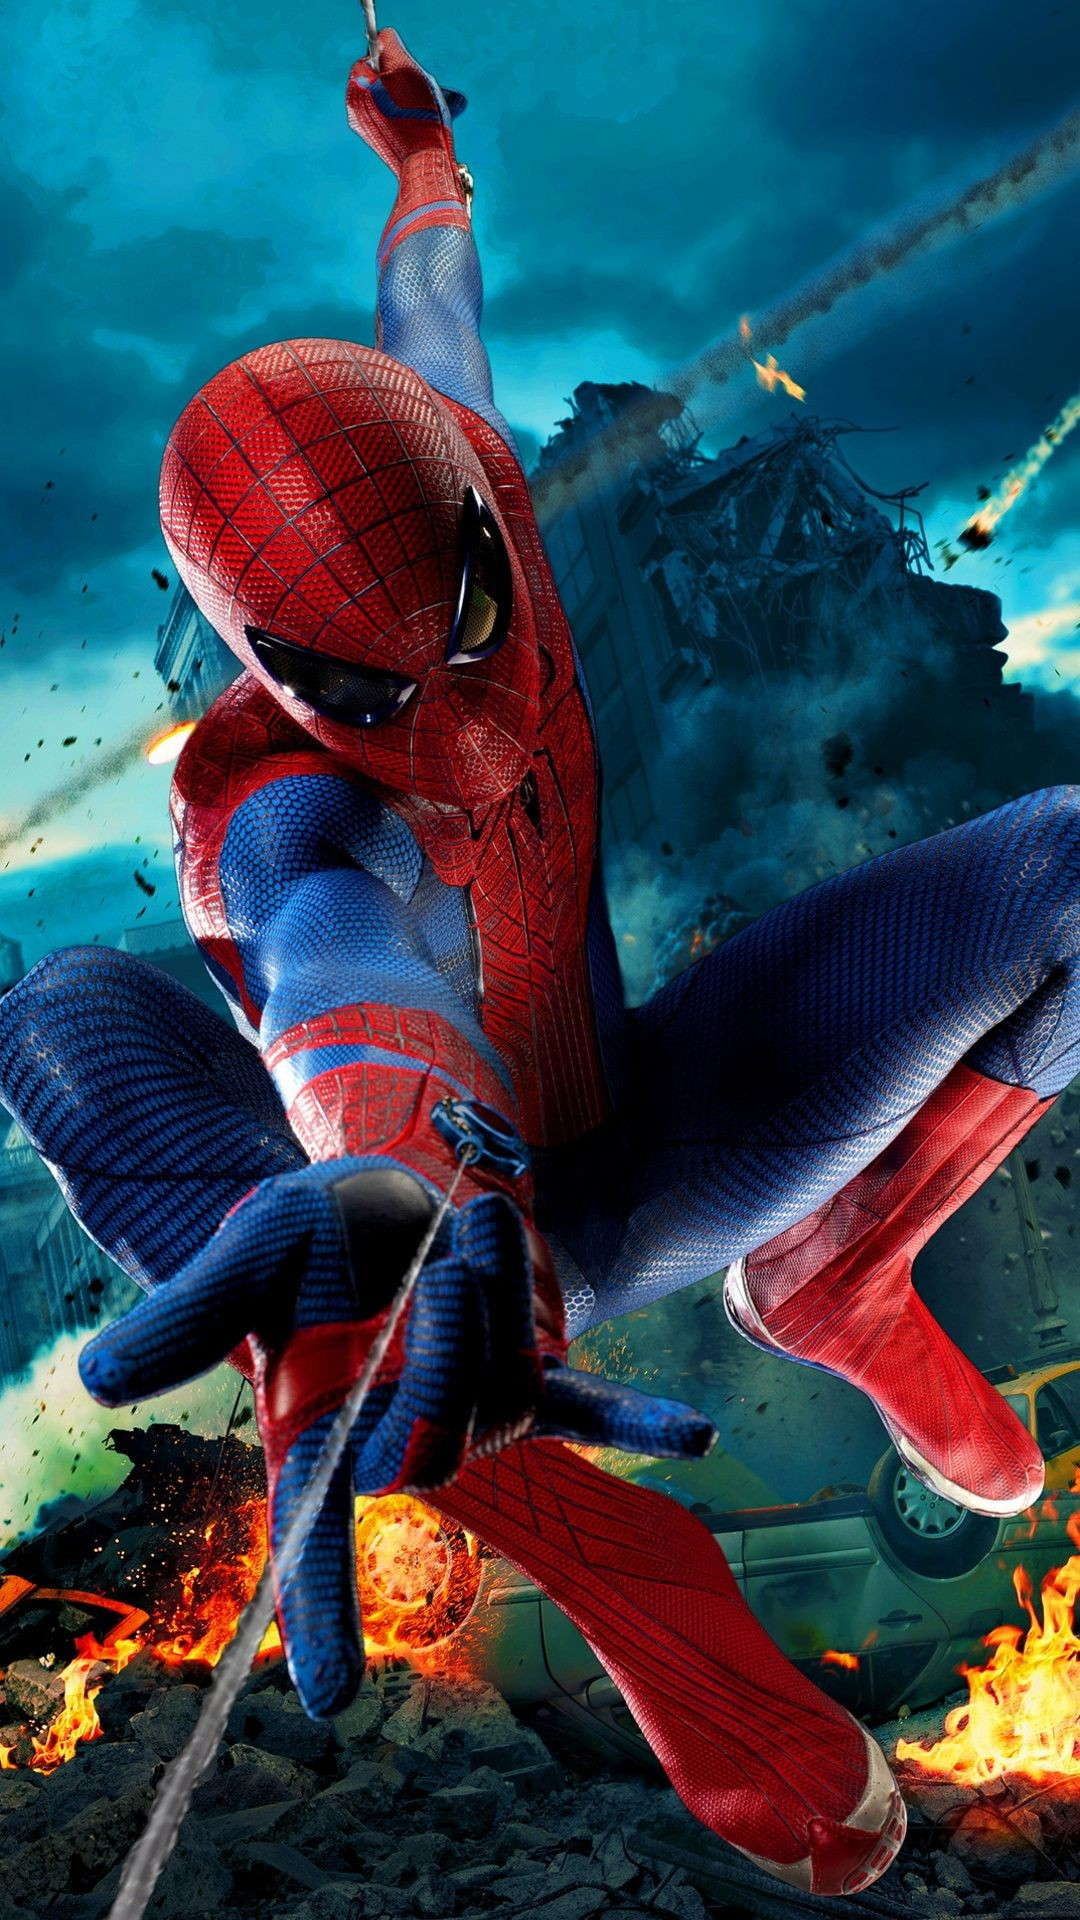 Spider Man Homecoming Wallpaper Iphone 6 6s 7 By Spideylife 1080x1920